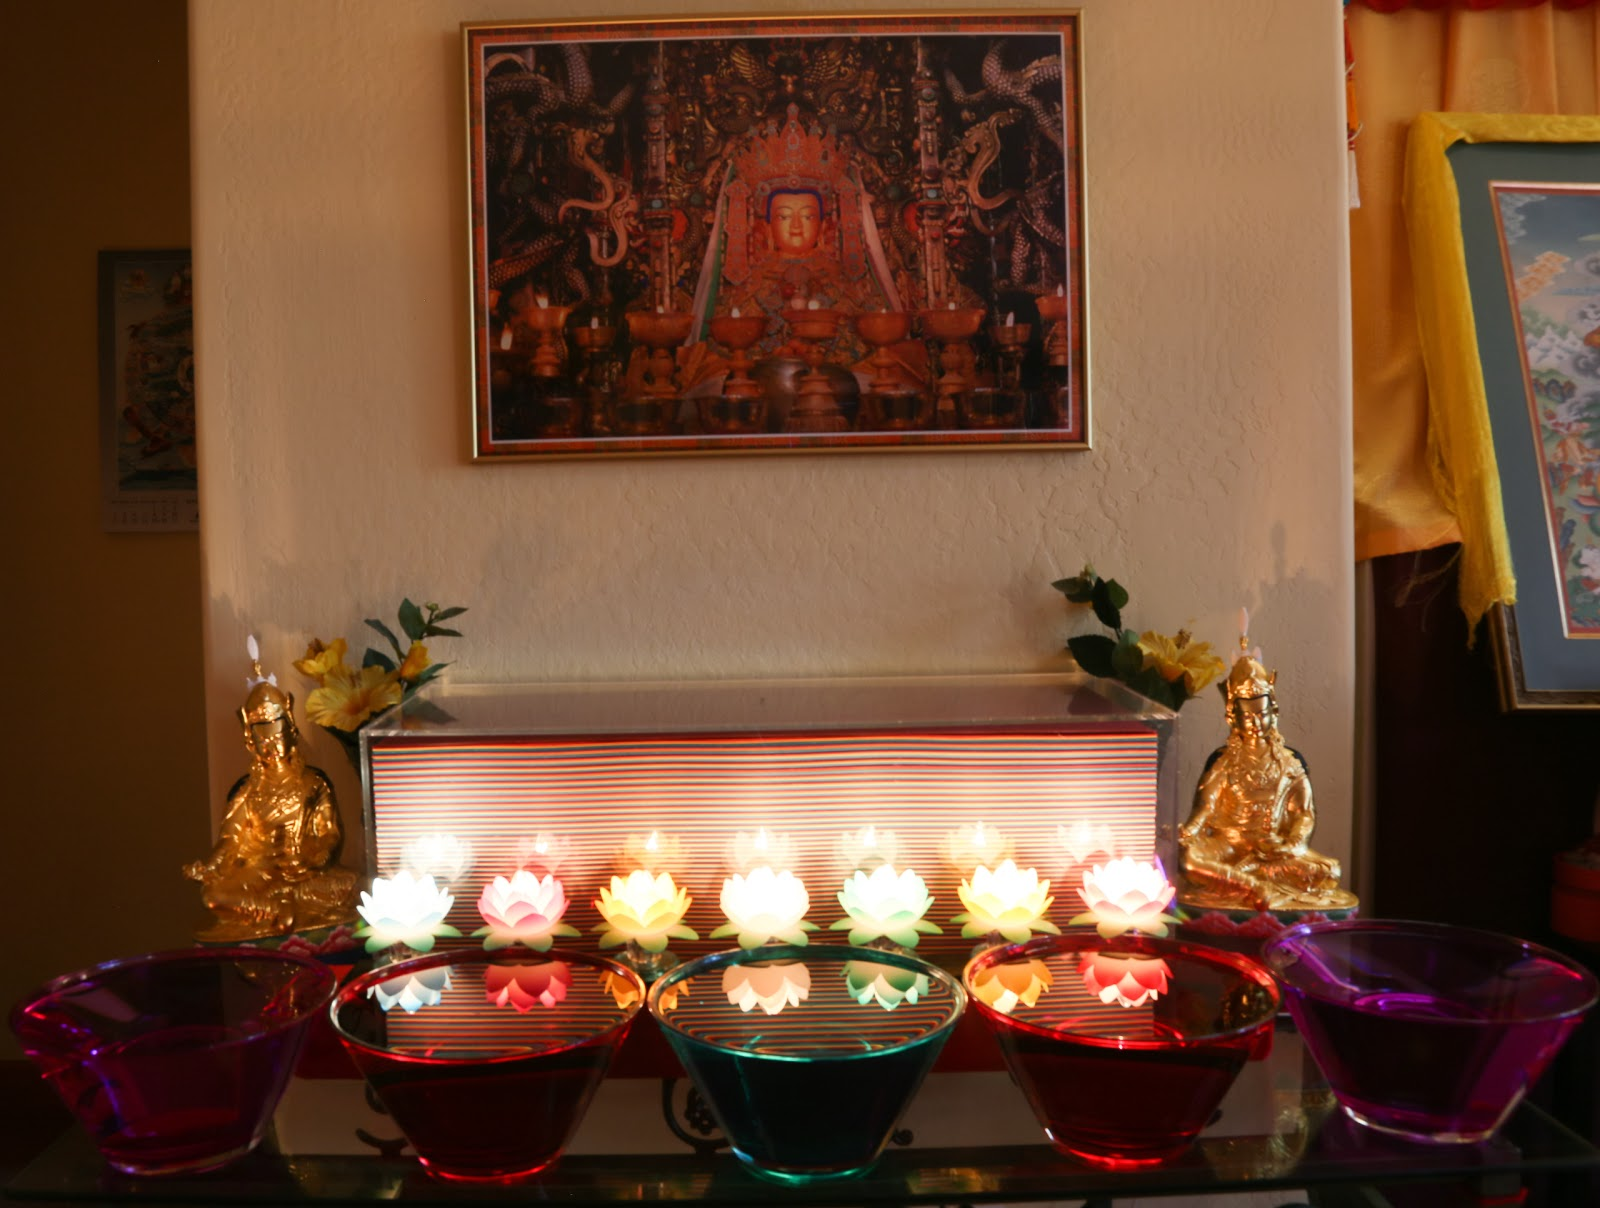 Prajnaparamita. Photo by Ven. Thubten Kunsang.